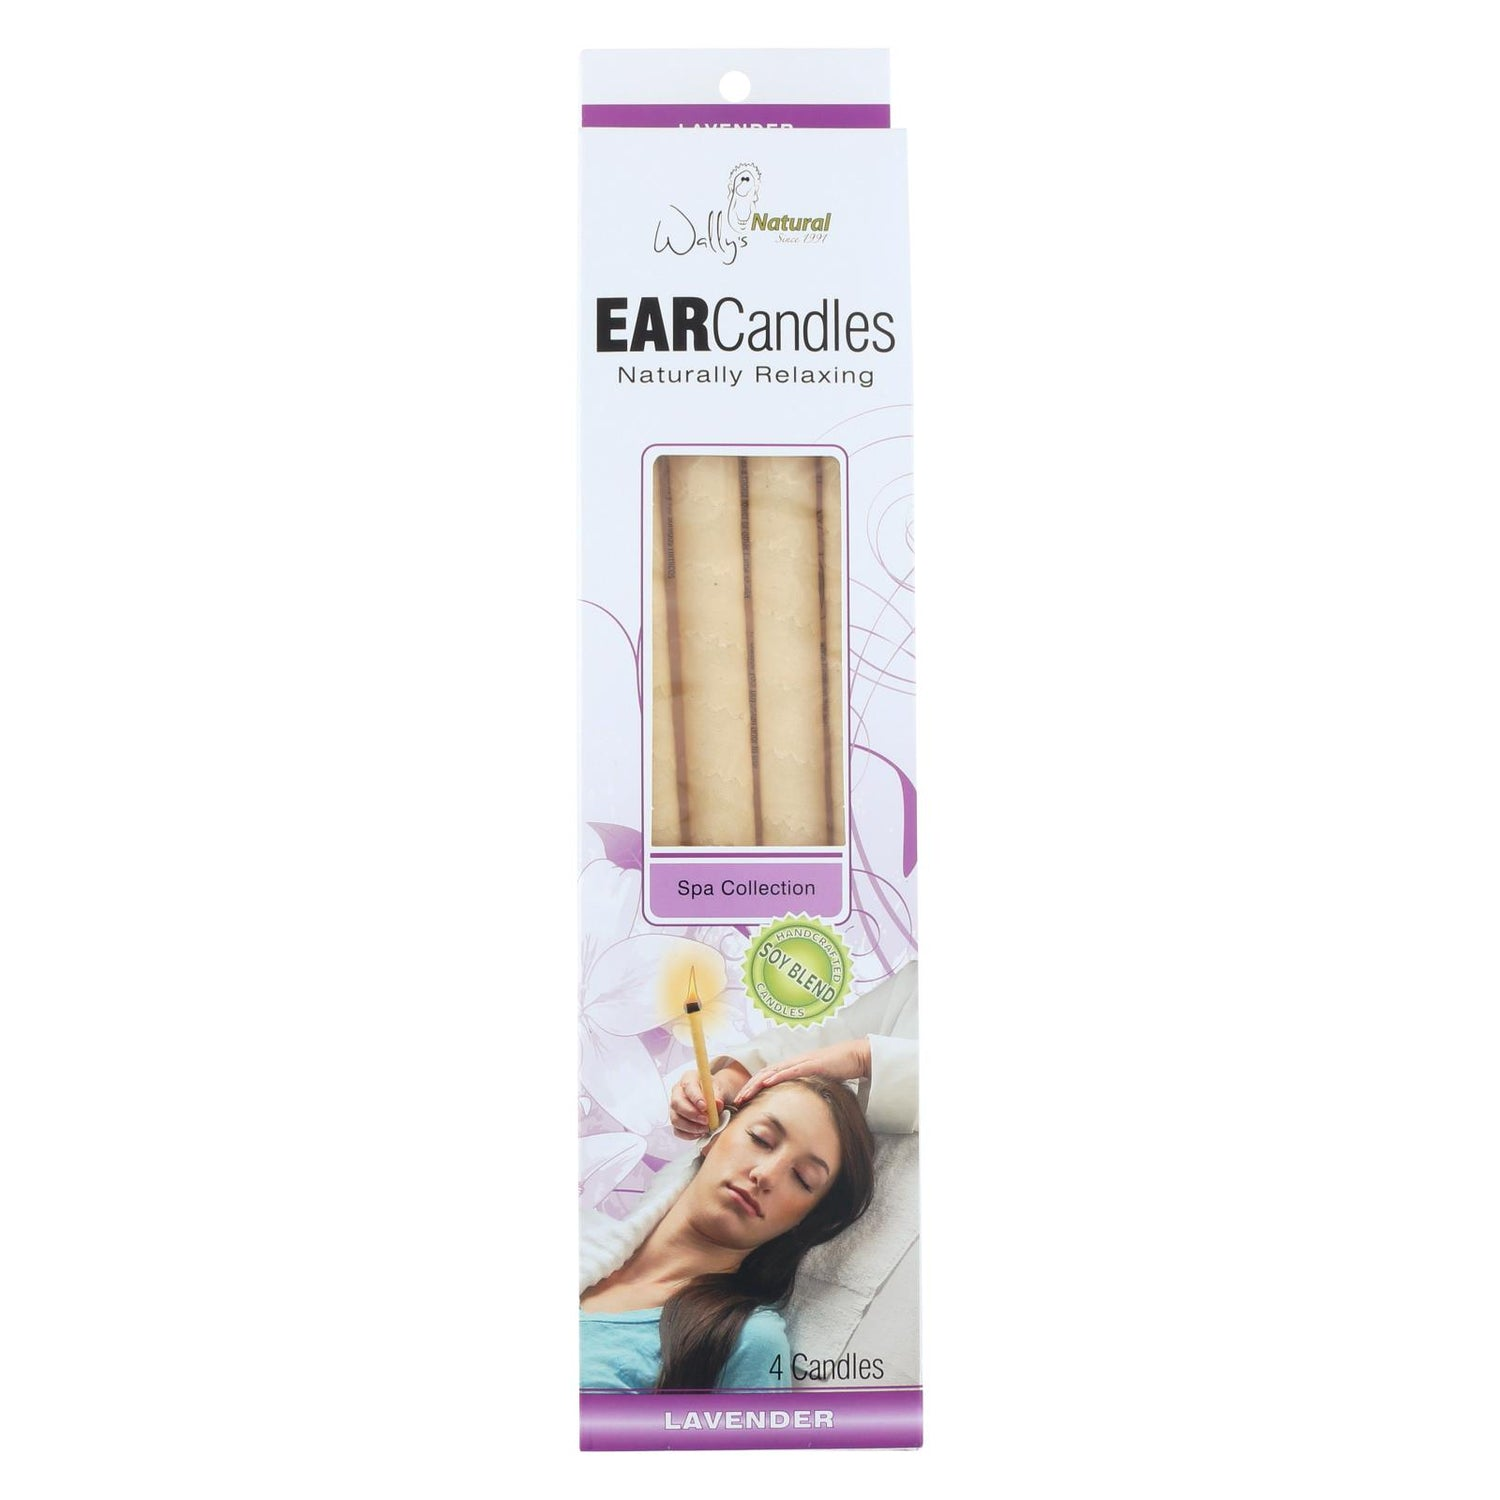 Wally's Ear Candles Lavender Paraffin - 4 Candles